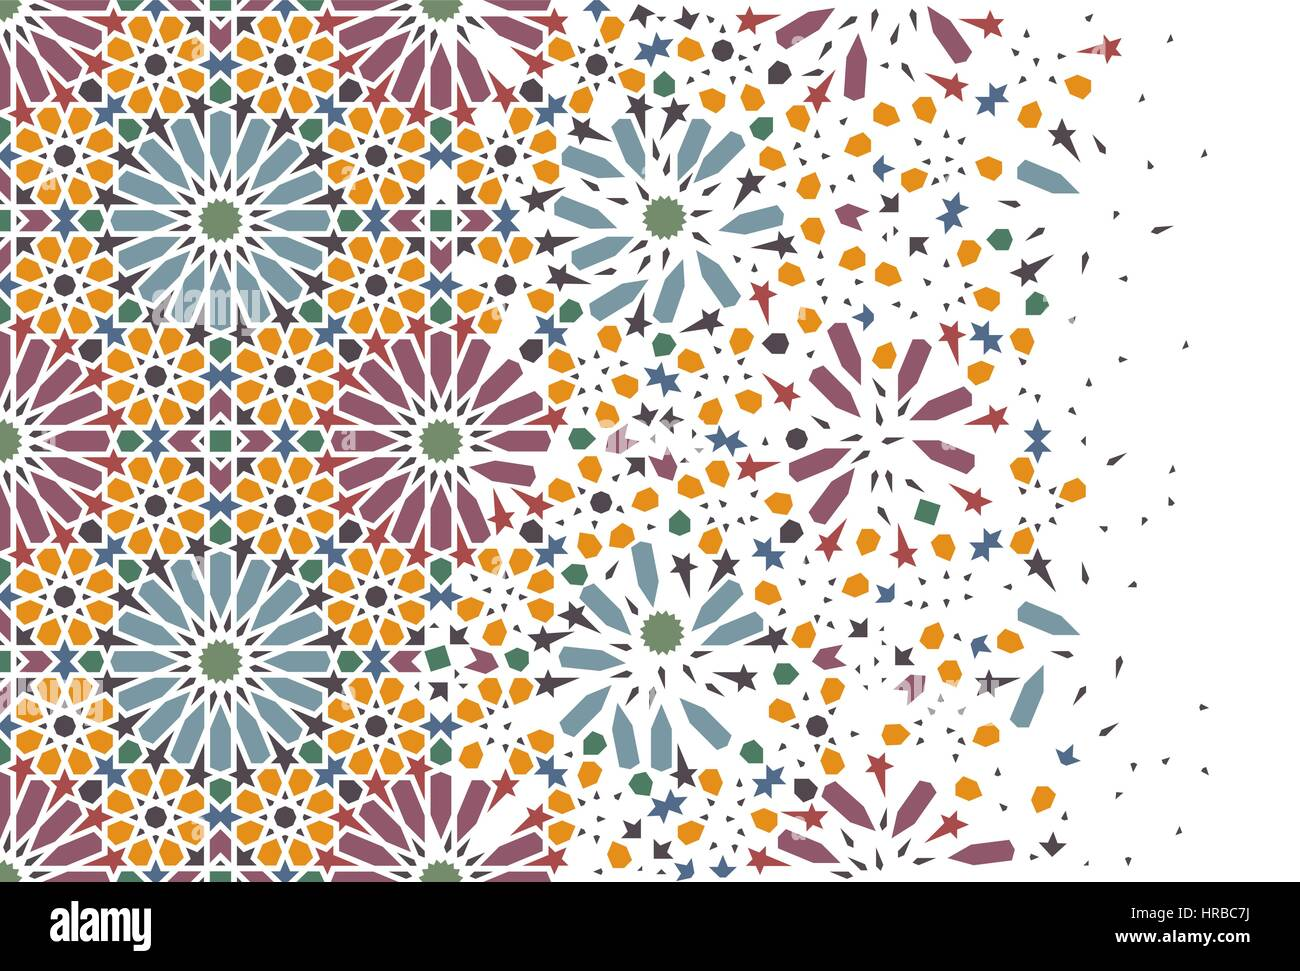 Arabesque Style Decoration Of Arabesque Traditional Arabian Mosaic Tile Seamless